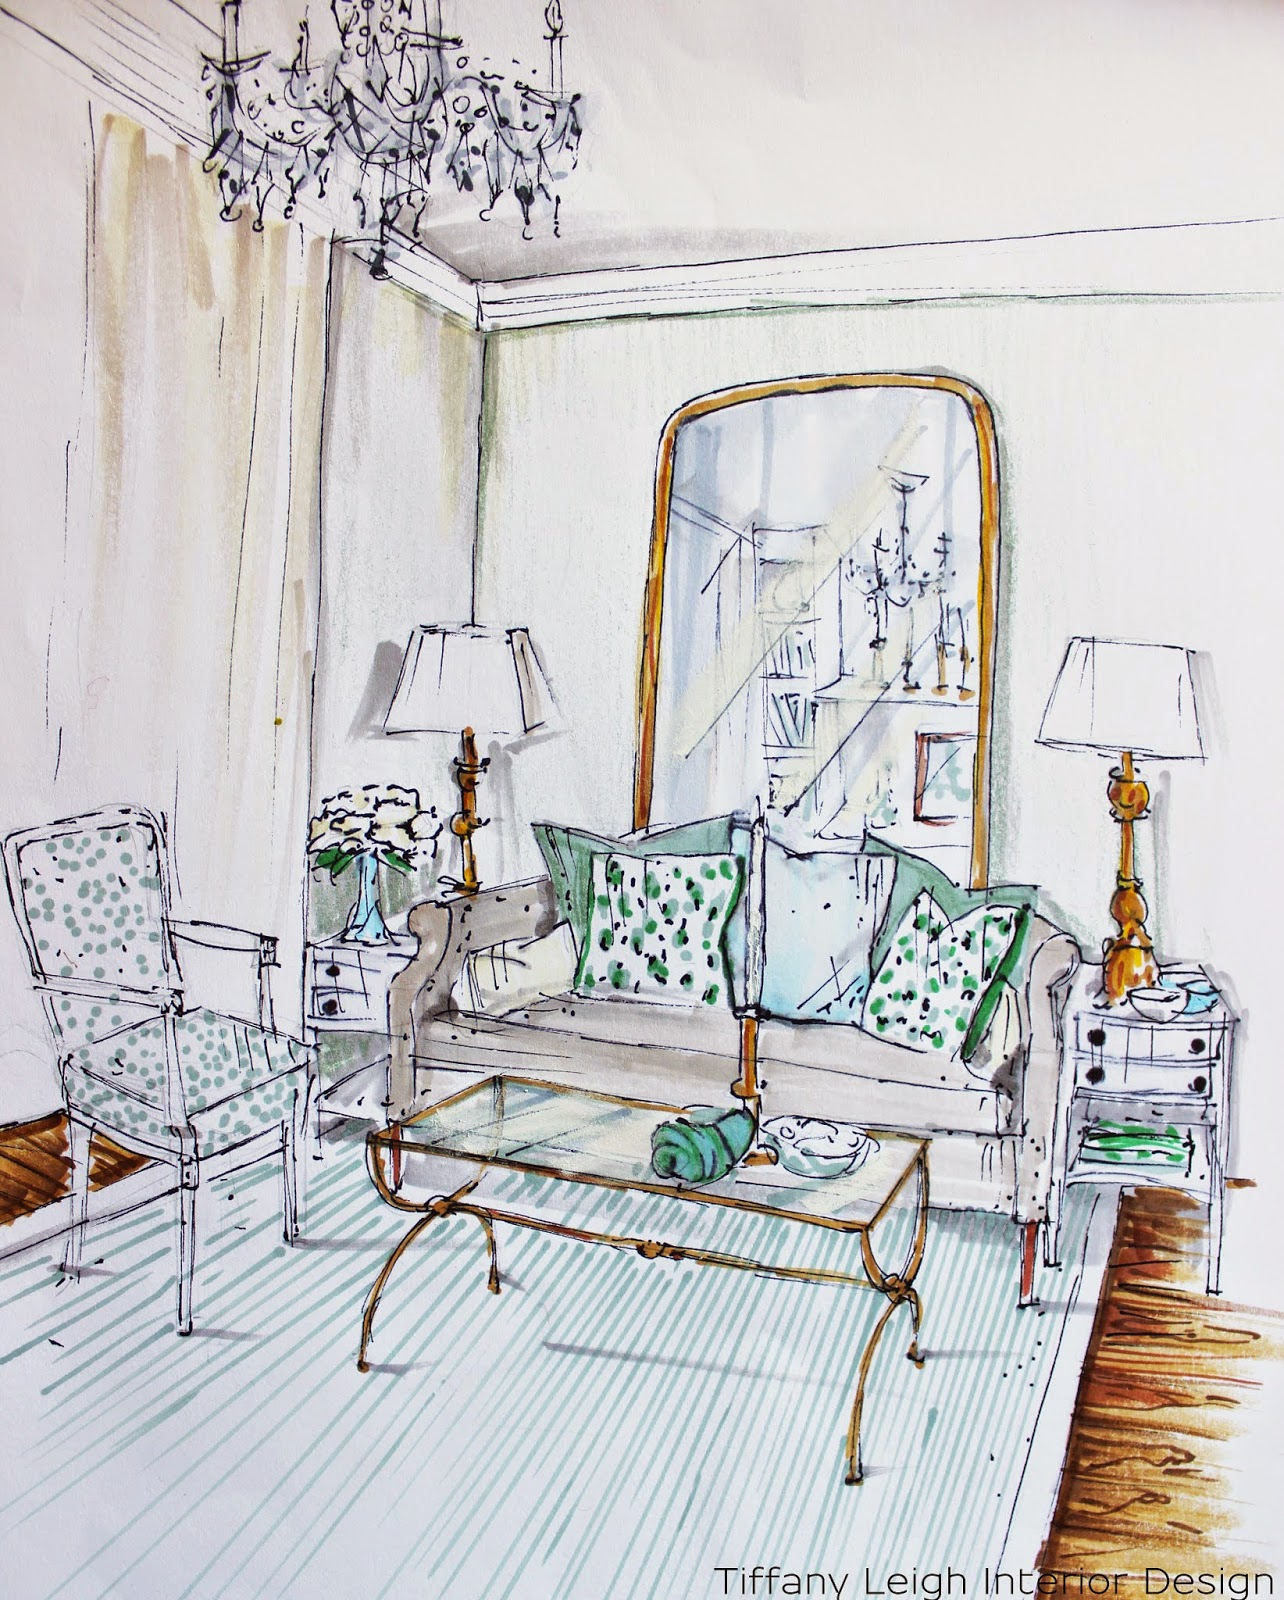 Tiffany leigh interior design in my sketchbook living Room sketches interior design